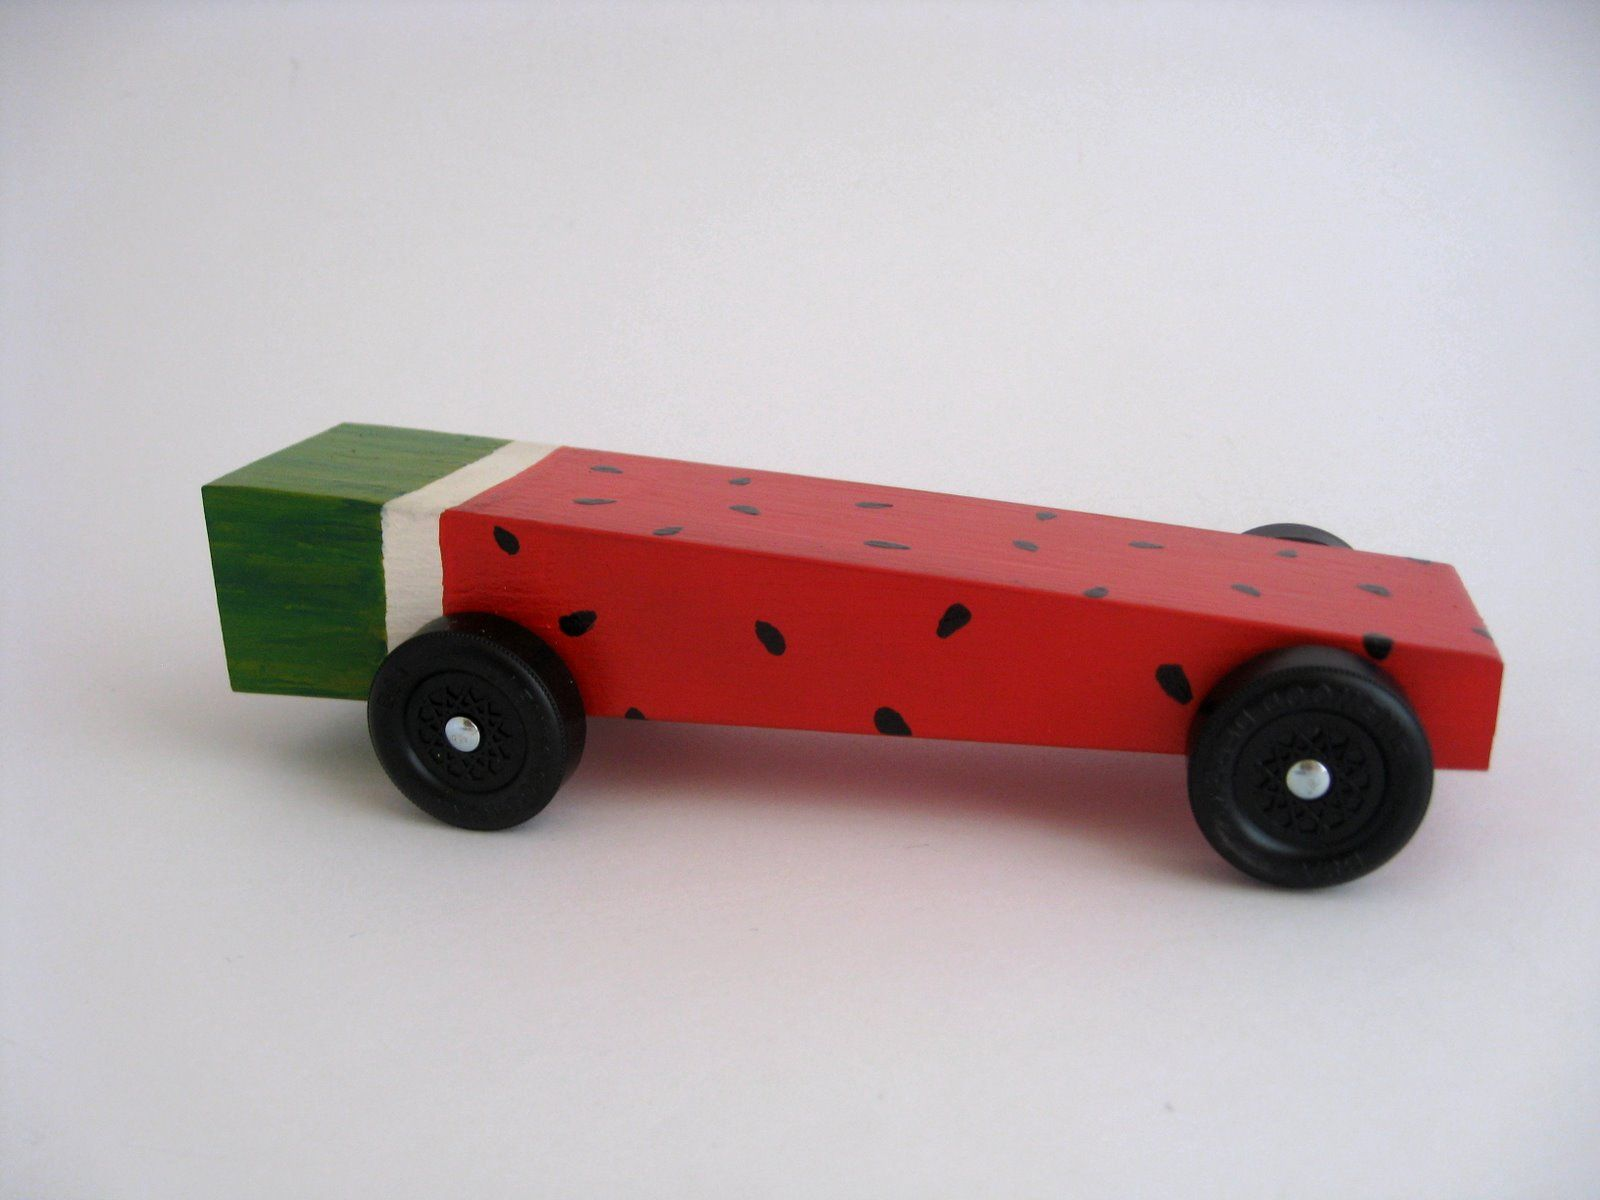 awana grand prix car instructions